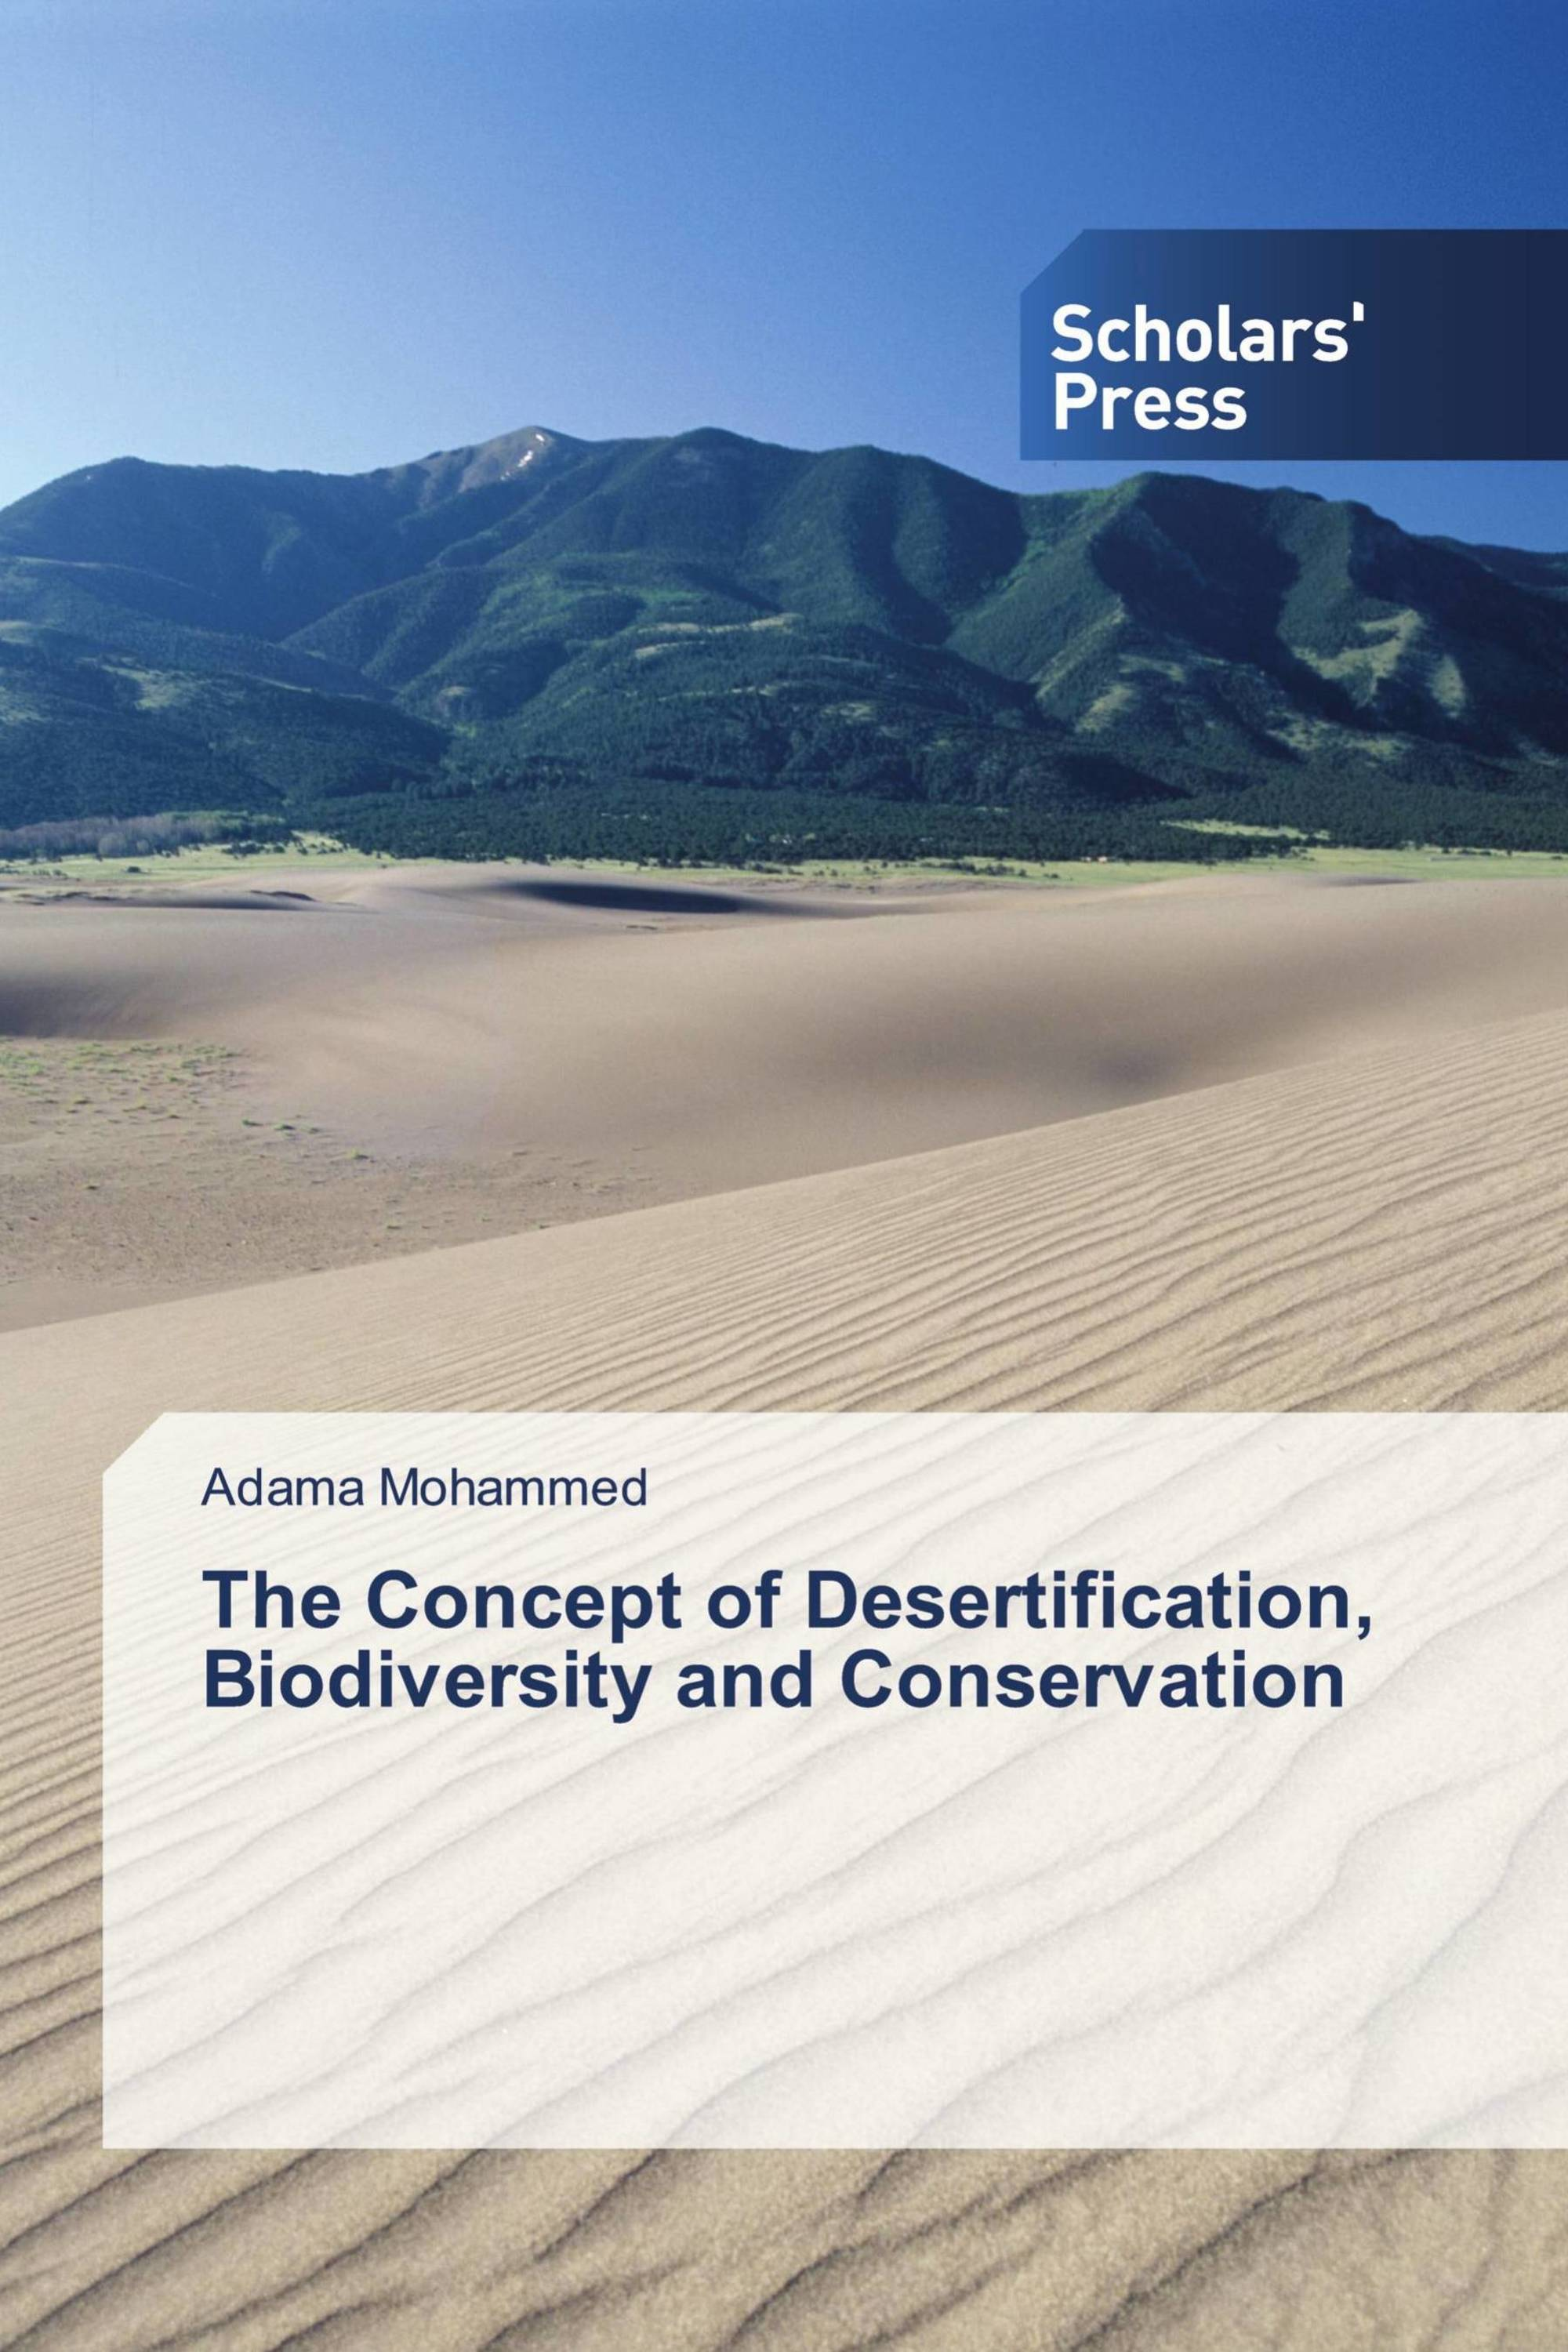 The Concept of Desertification, Biodiversity and Conservation